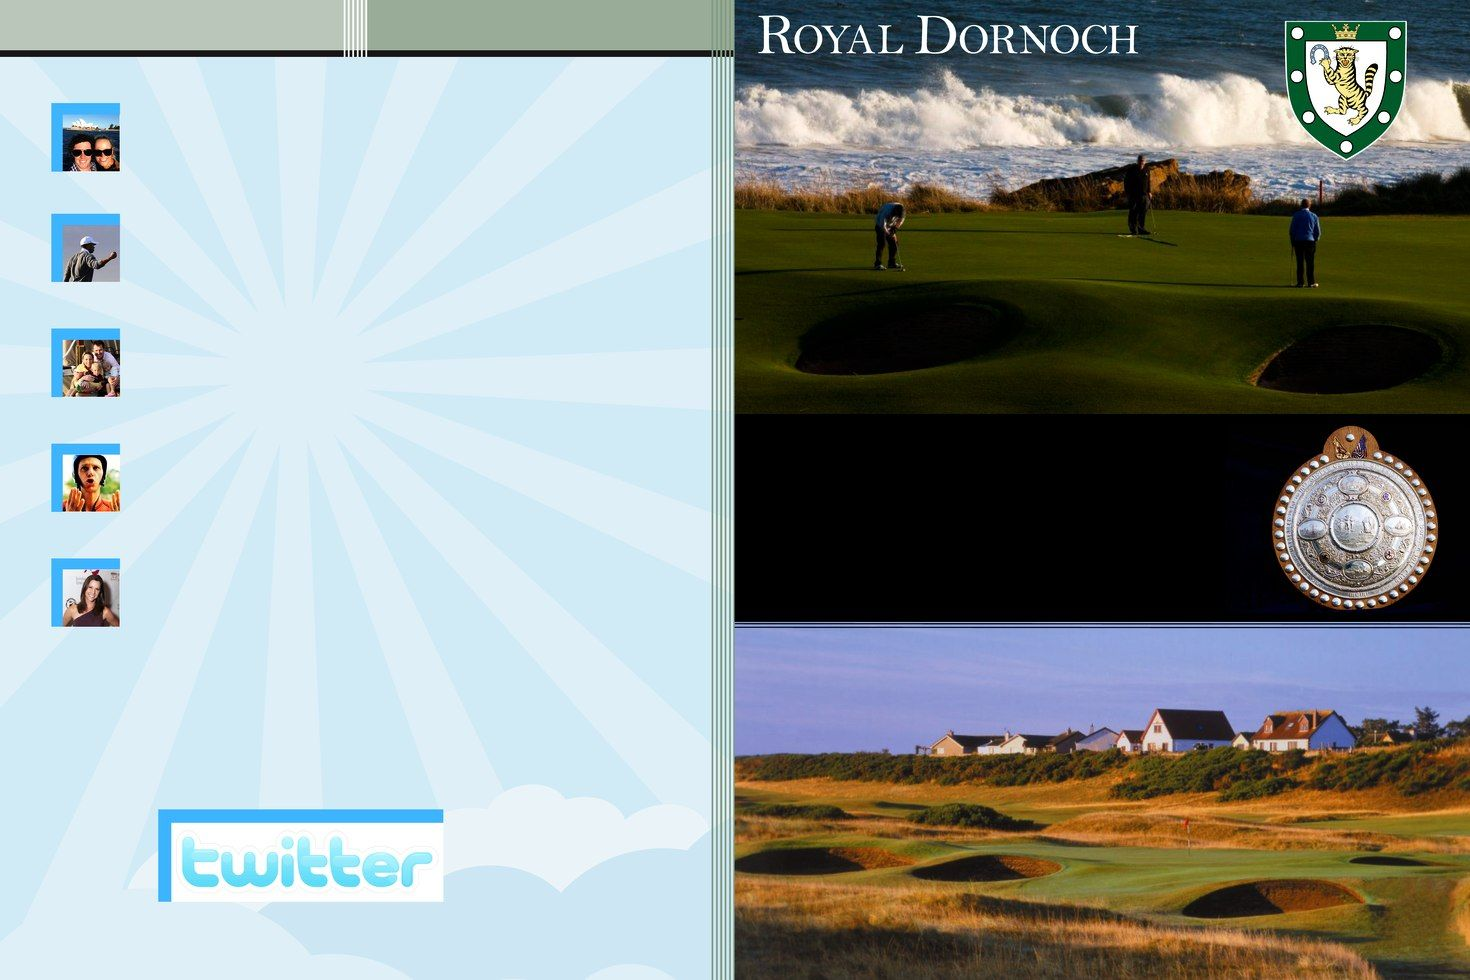 Royal Dornoch - the course won!